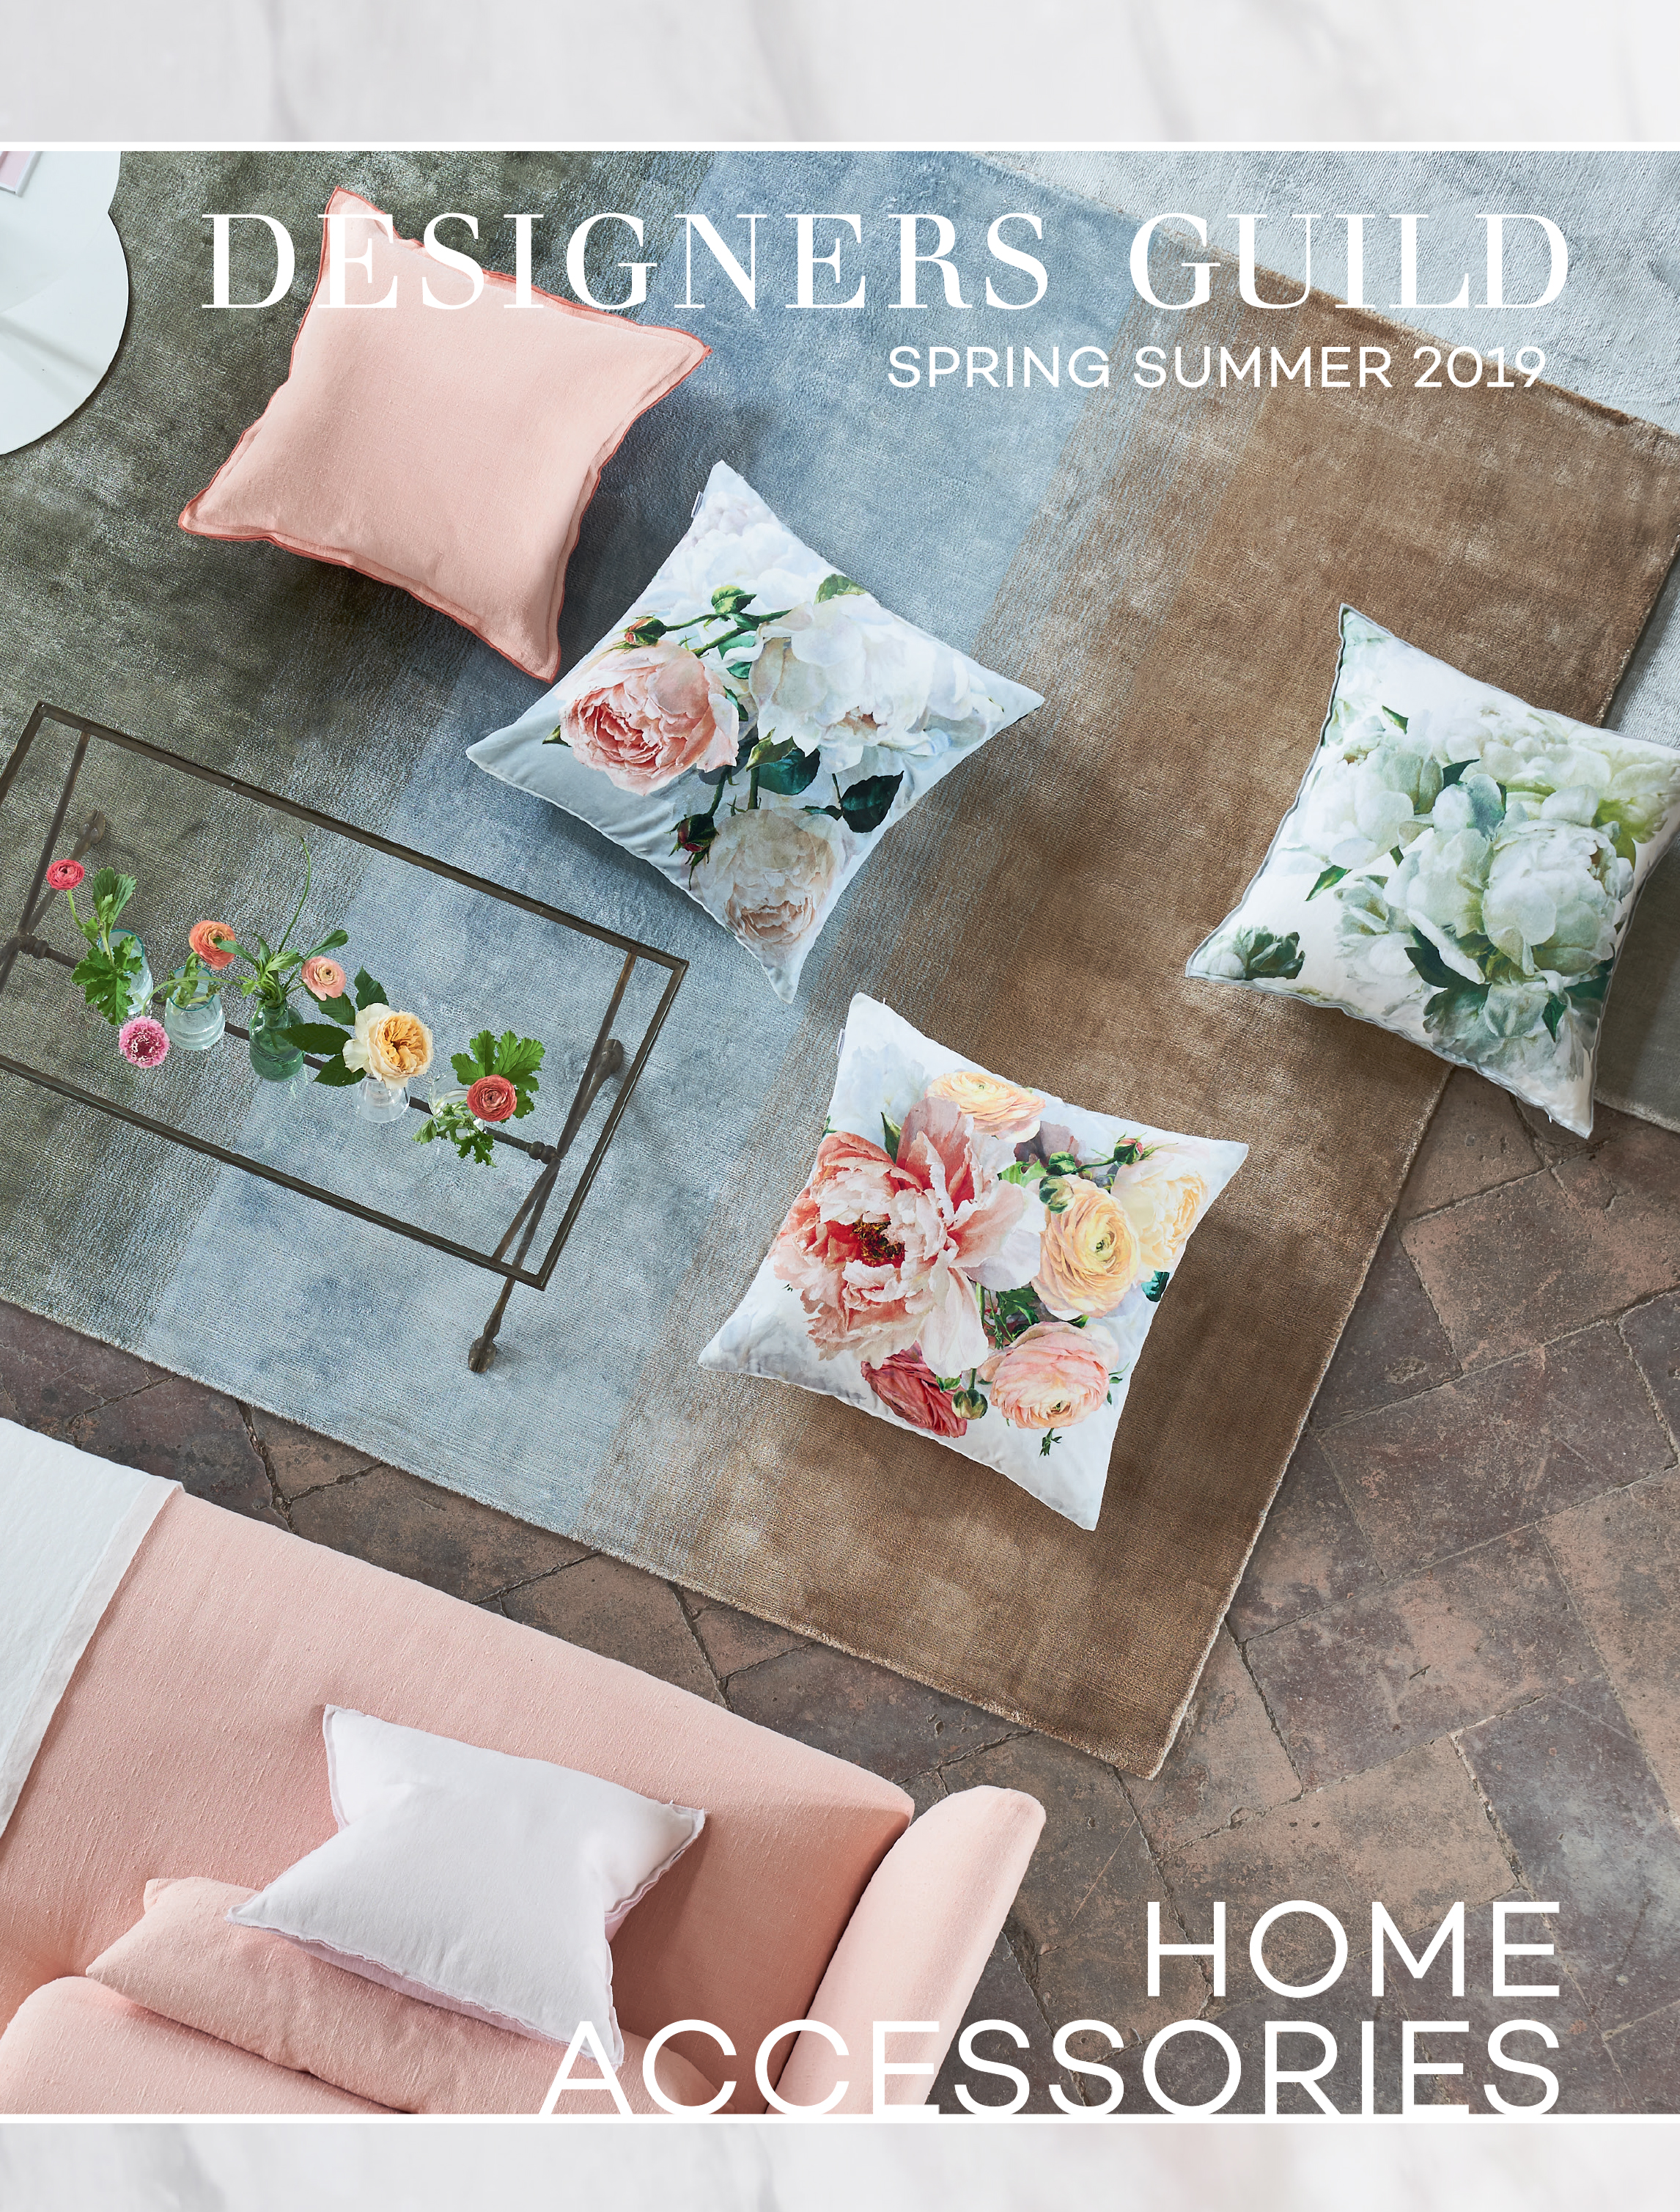 DESIGNERS GUILD HOME ACCESSORIES SPRING/SUMMER 2019